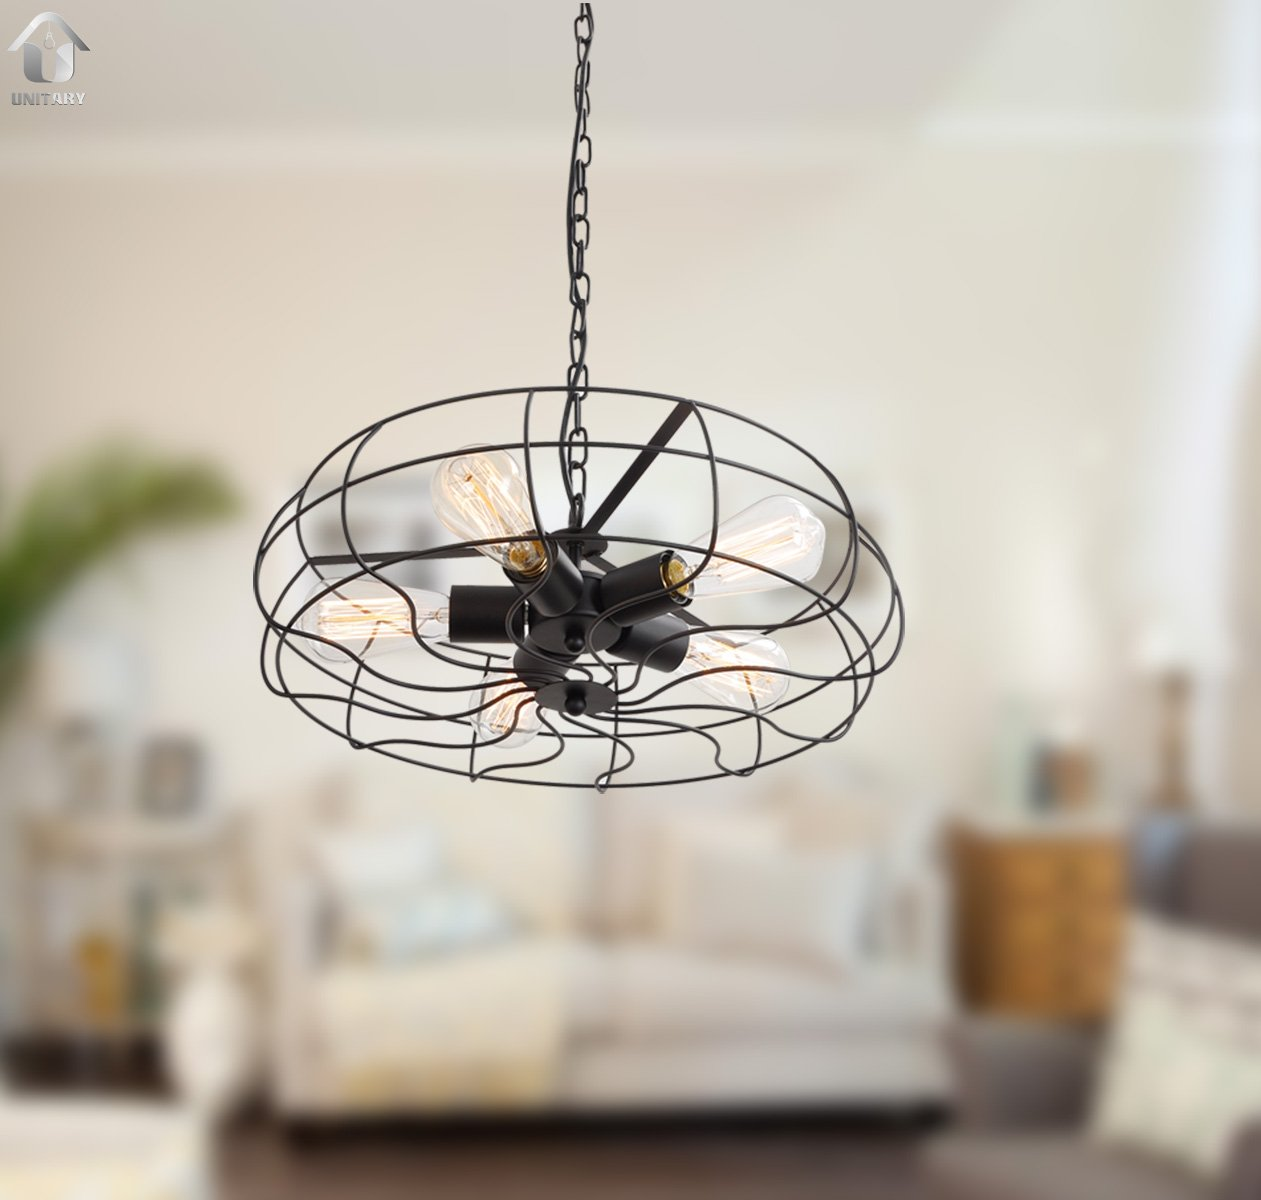 UNITARY BRAND Vintage Barn Metal Hanging Ceiling Chandelier Max. 200W With 5 Lights Painted Finish 1